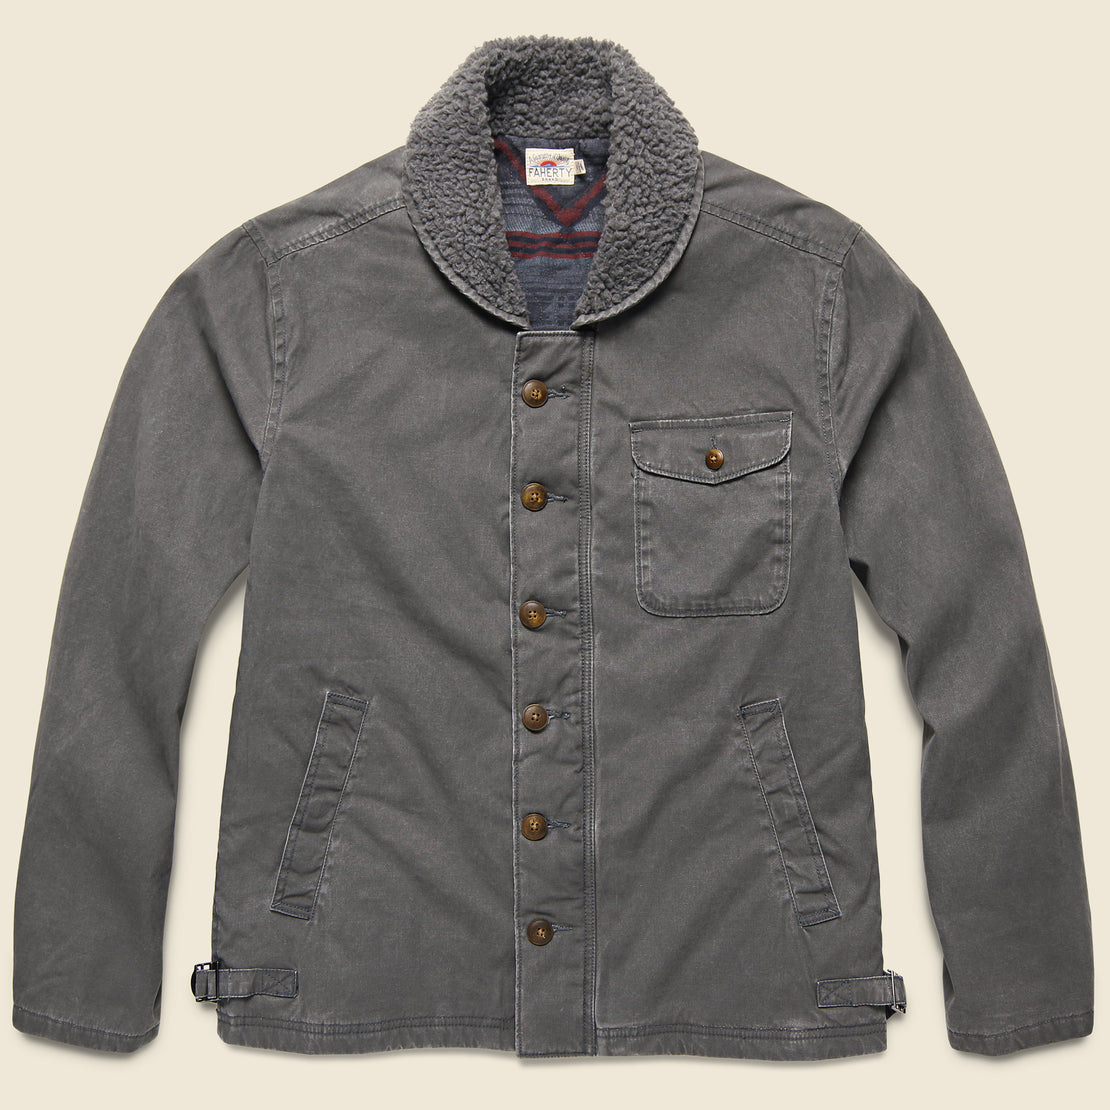 Faherty Deck Jacket - Charcoal Sulphur